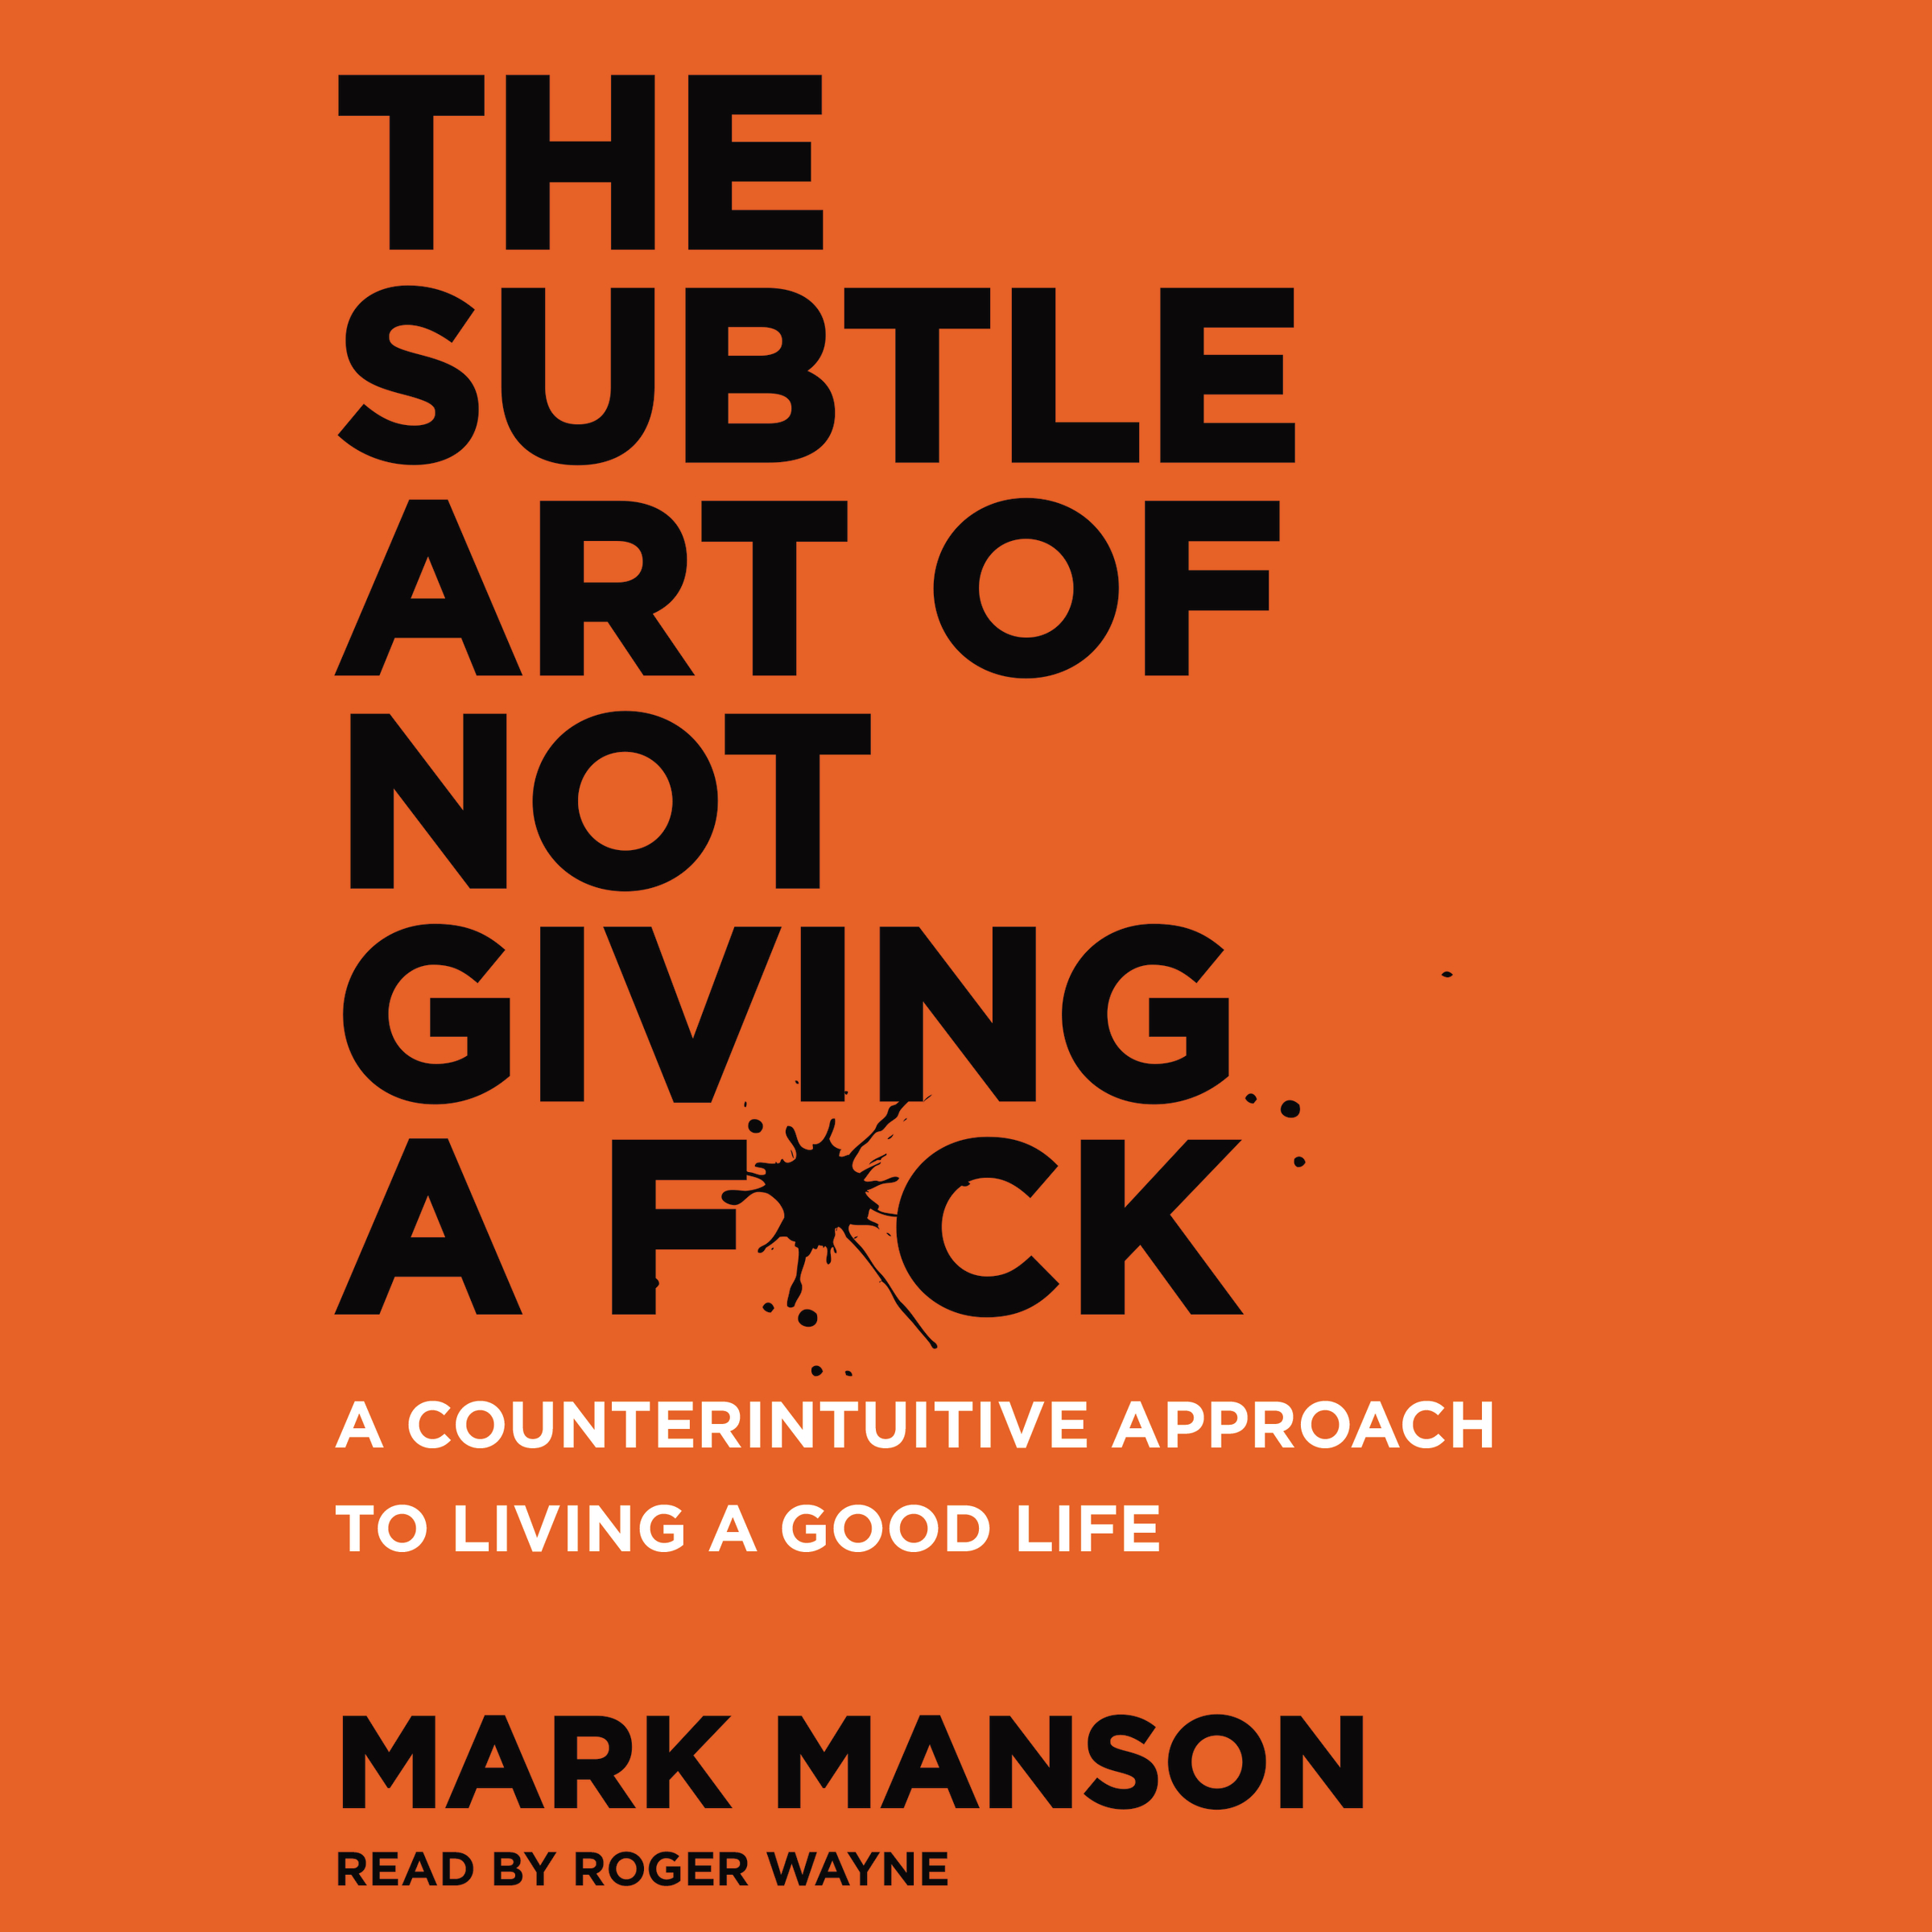 The Subtle Art of Not Giving a F*ck.